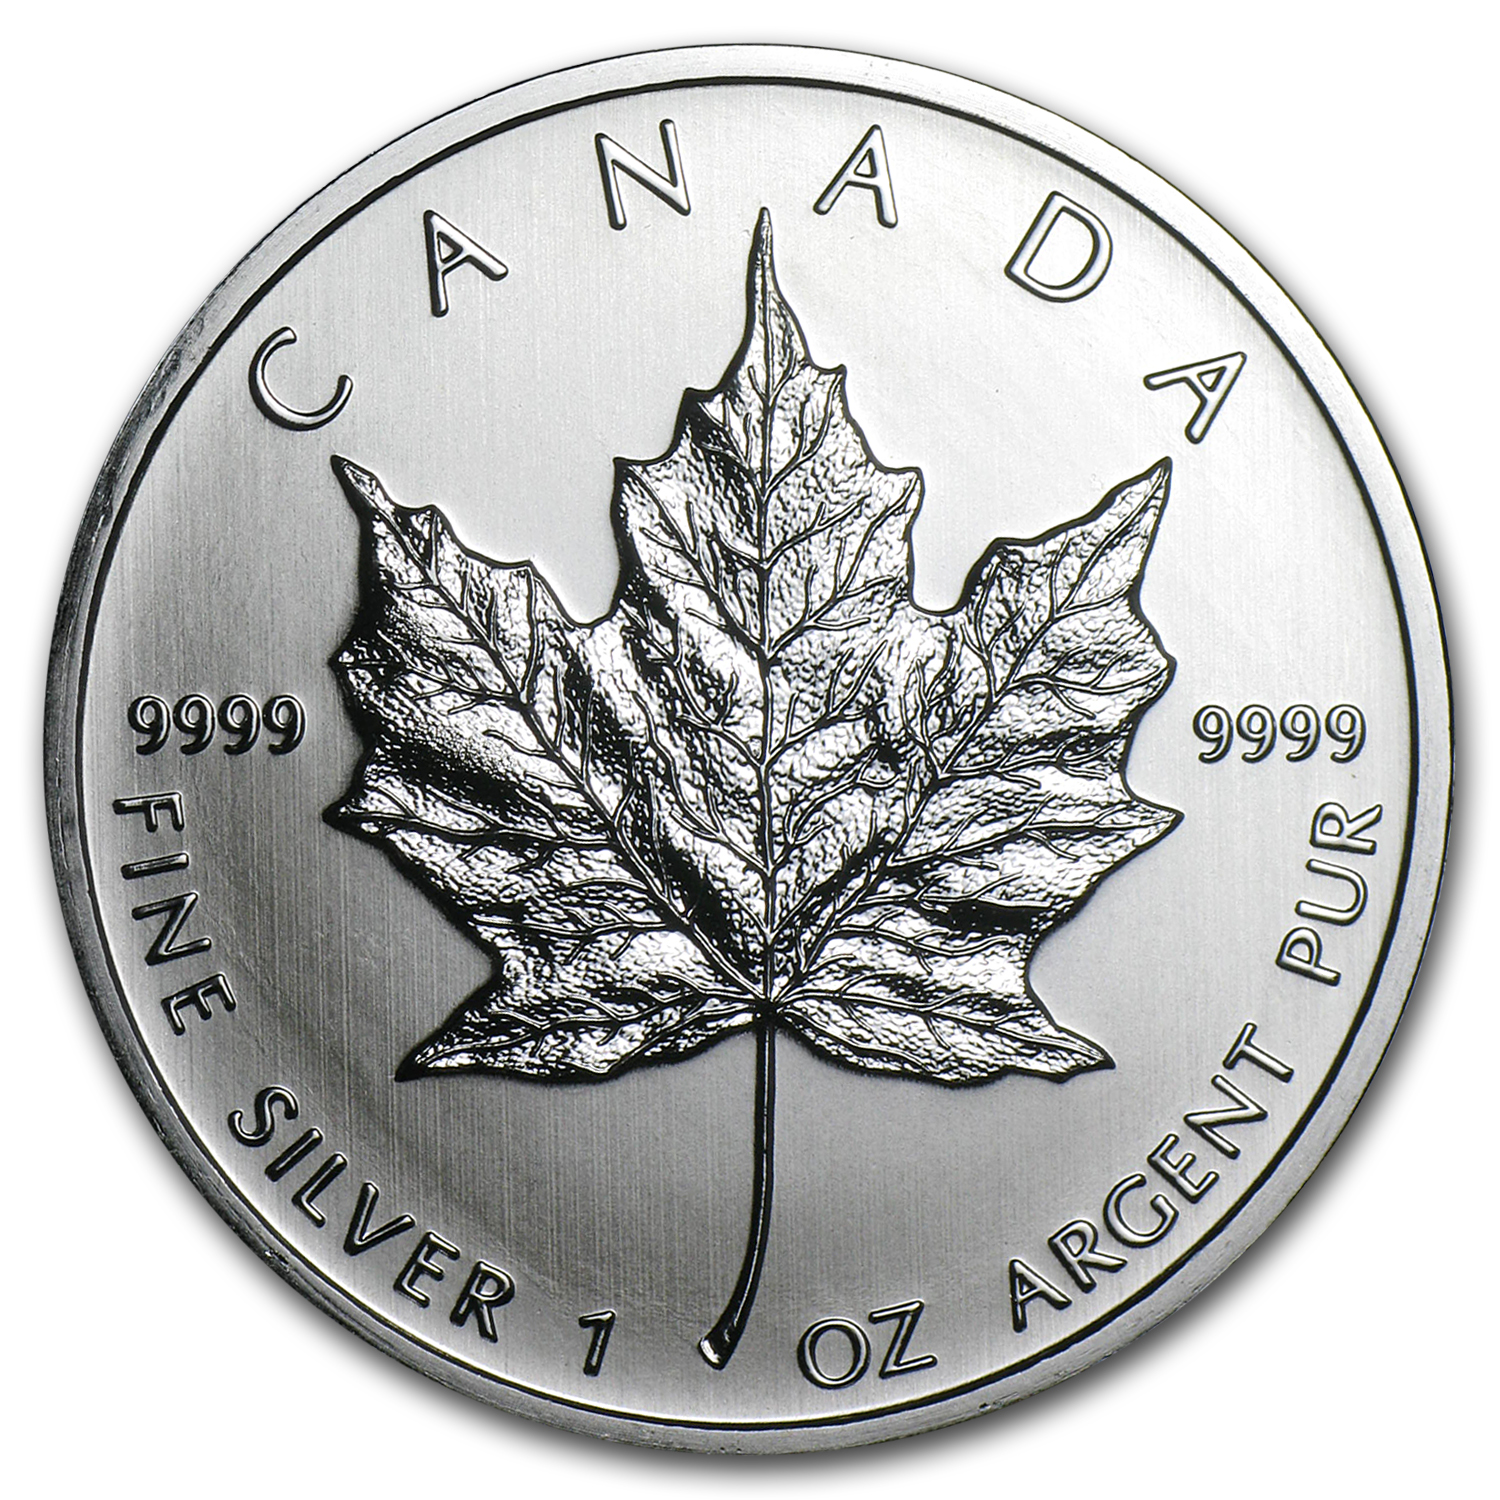 2011 1 oz Silver Canadian Maple Leaf (Brilliant Uncirculated)